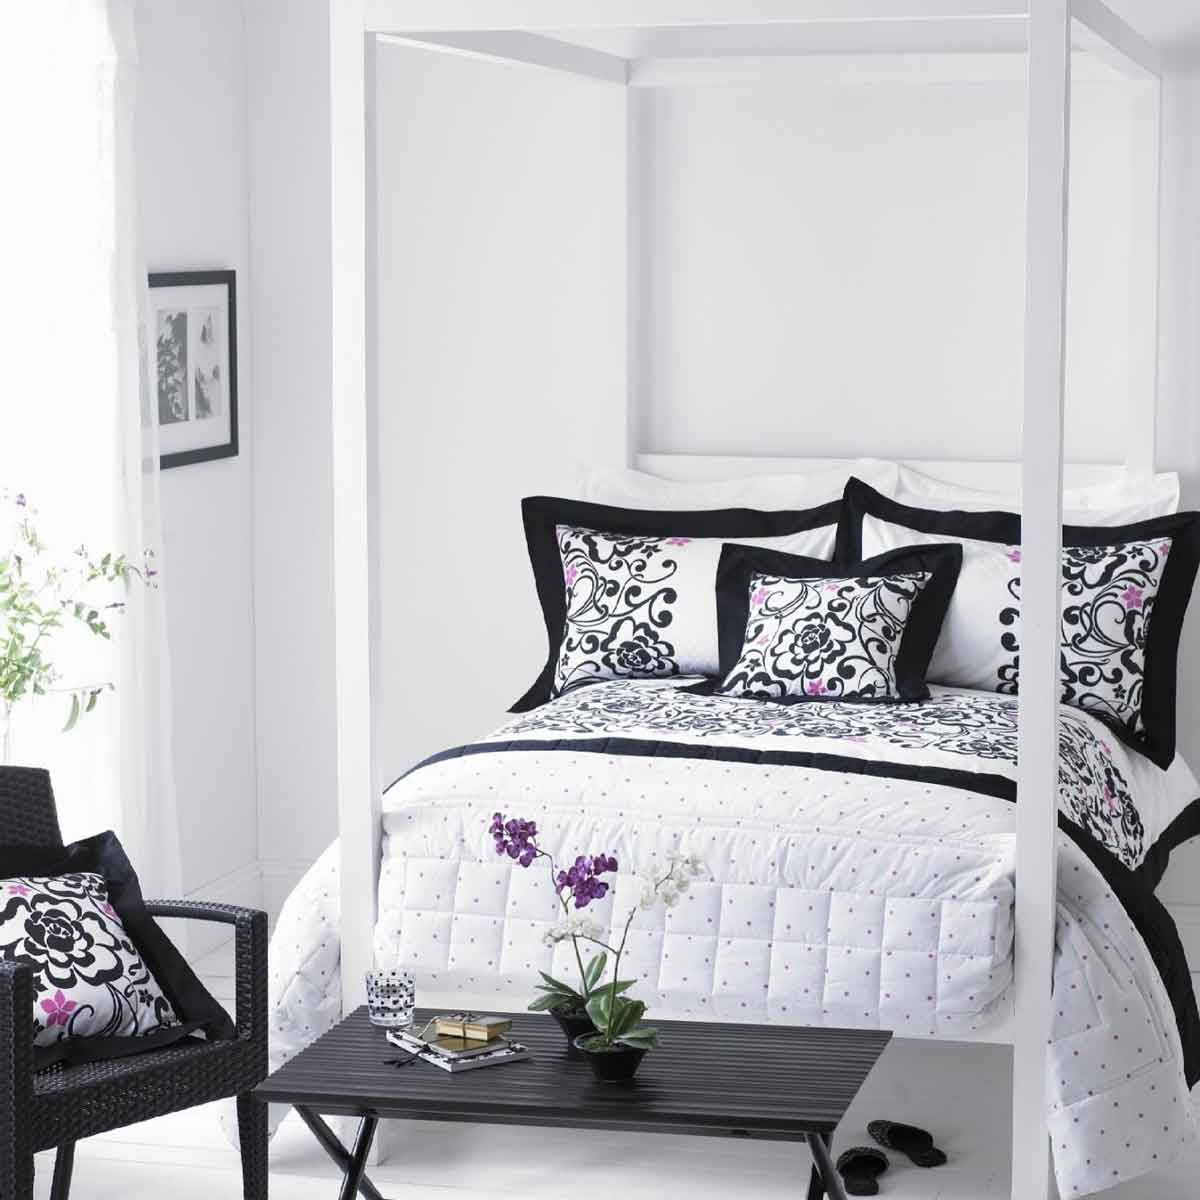 Black White And Gray Home Decor Black And White Bedrooms Designs Home Design Inside